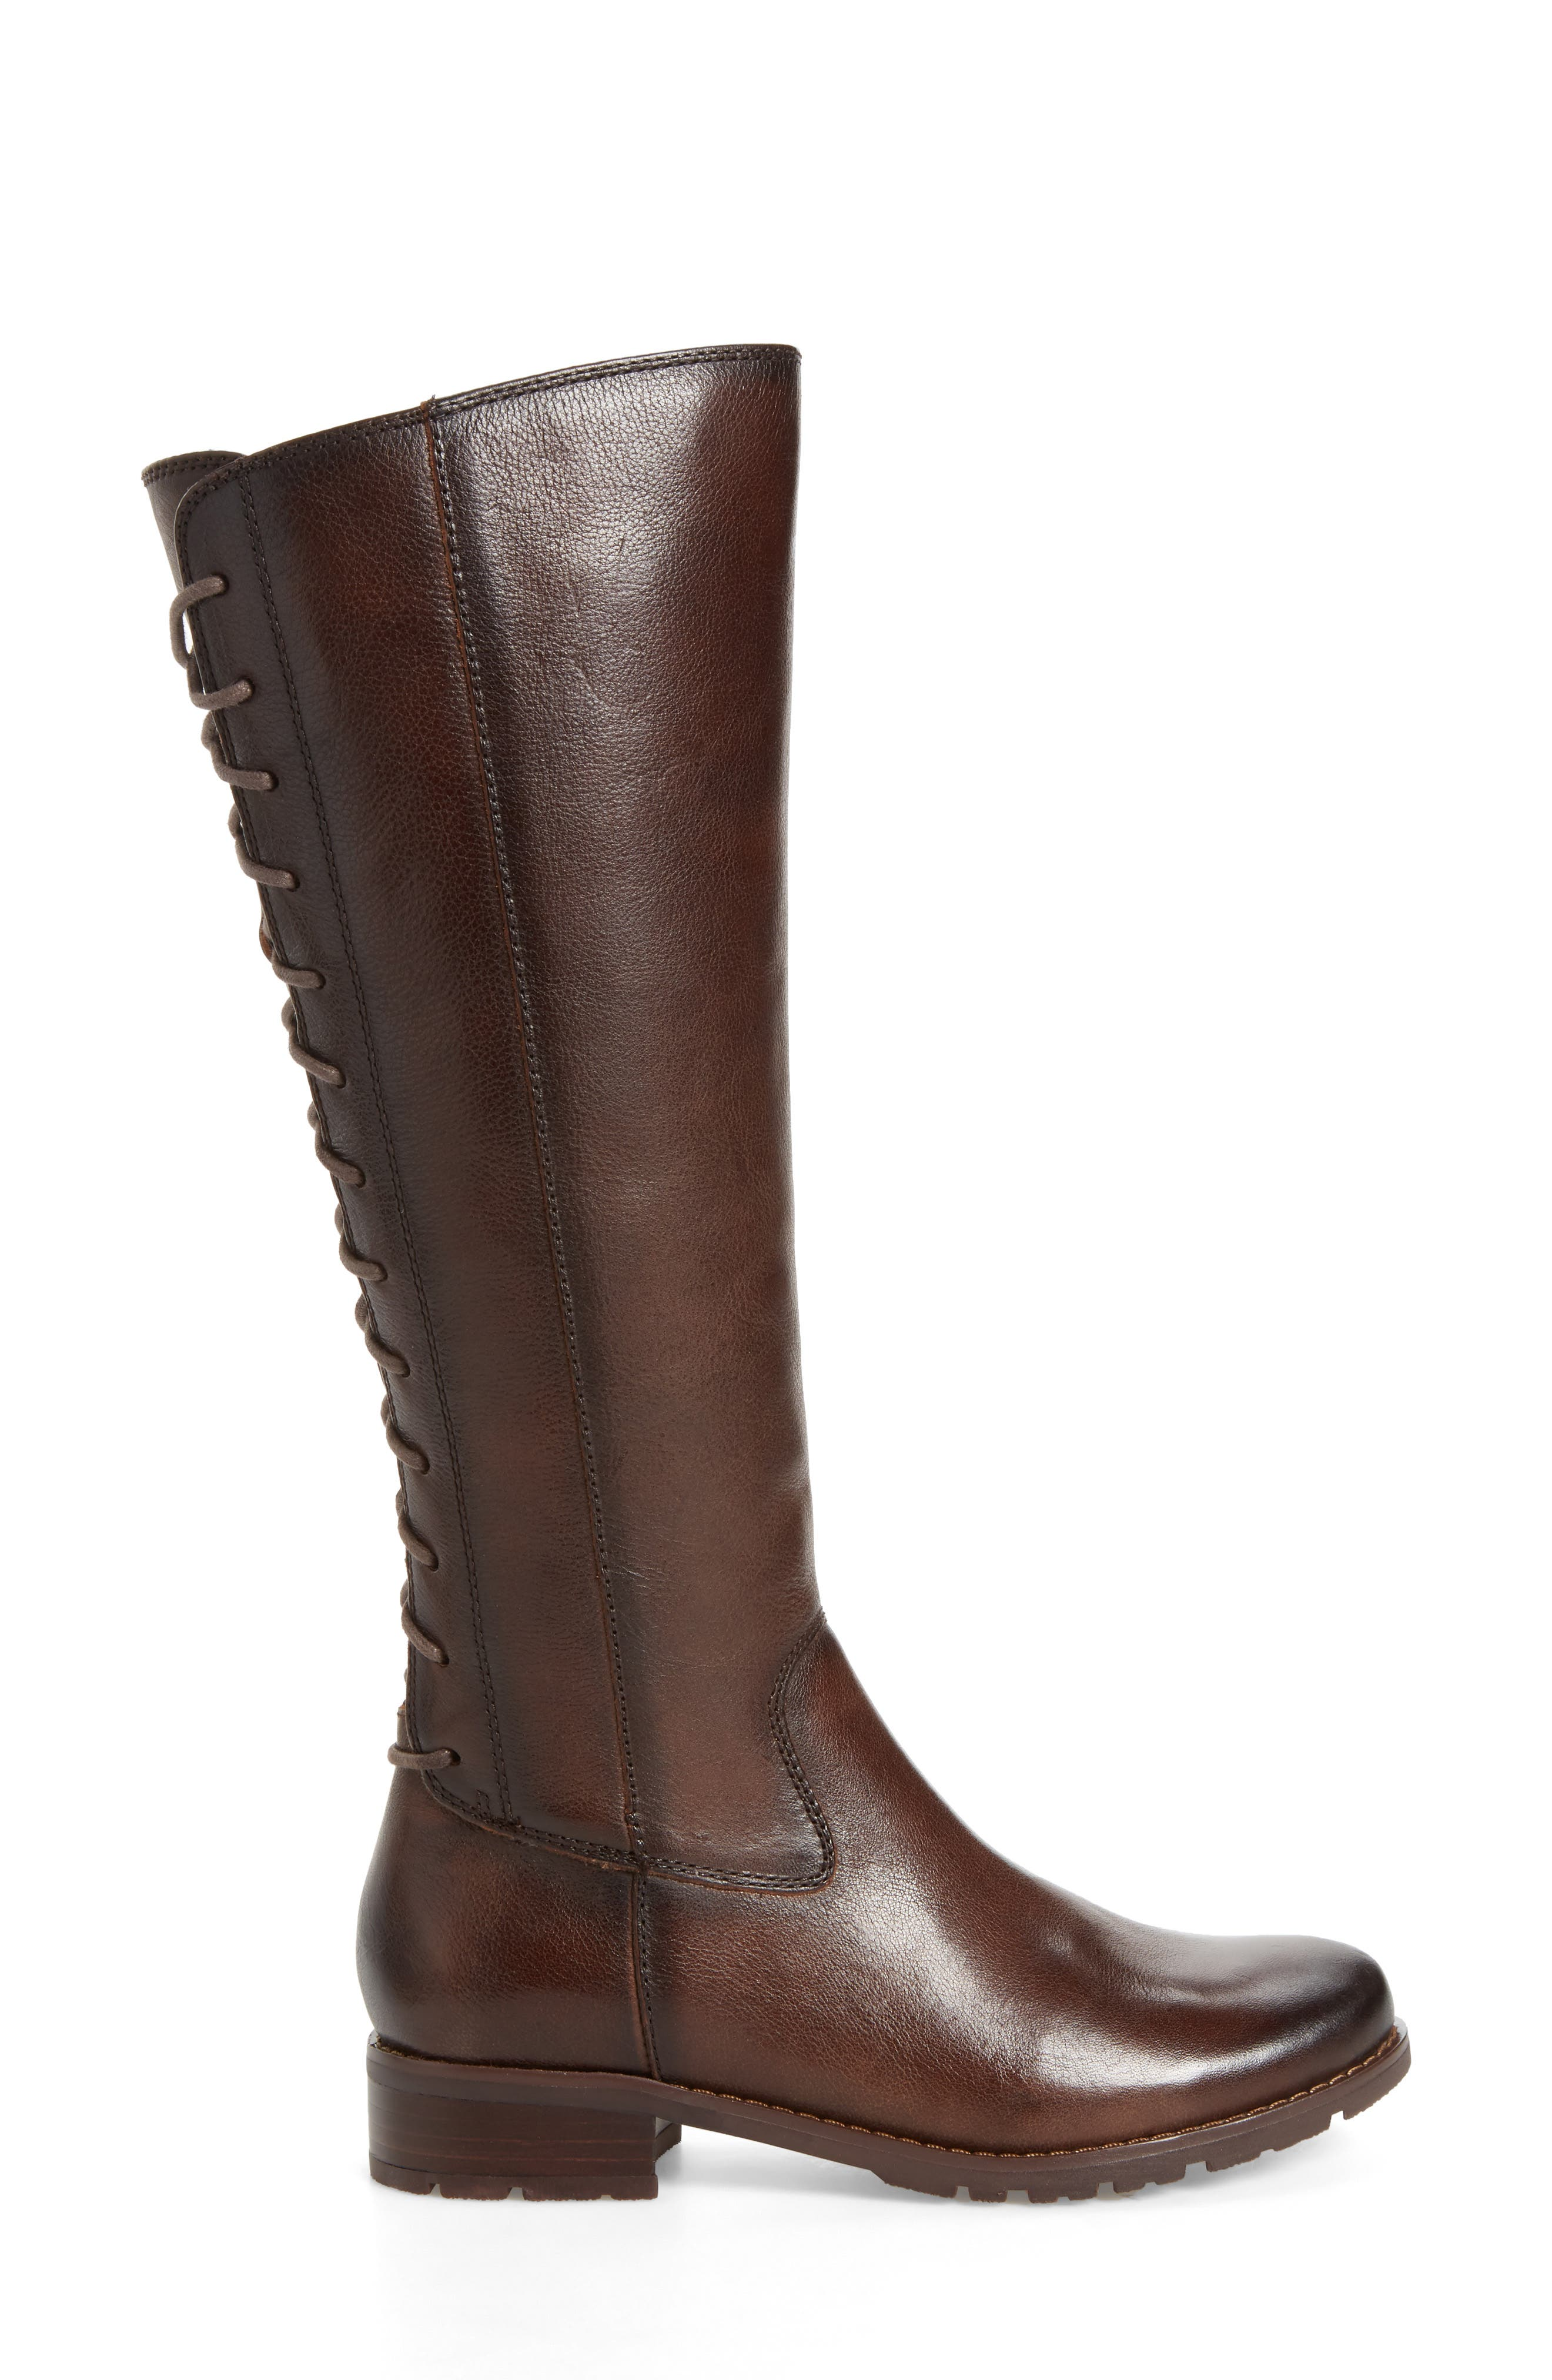 'Sharnell' Riding Boot,                             Alternate thumbnail 3, color,                             Aztec Brown Leather